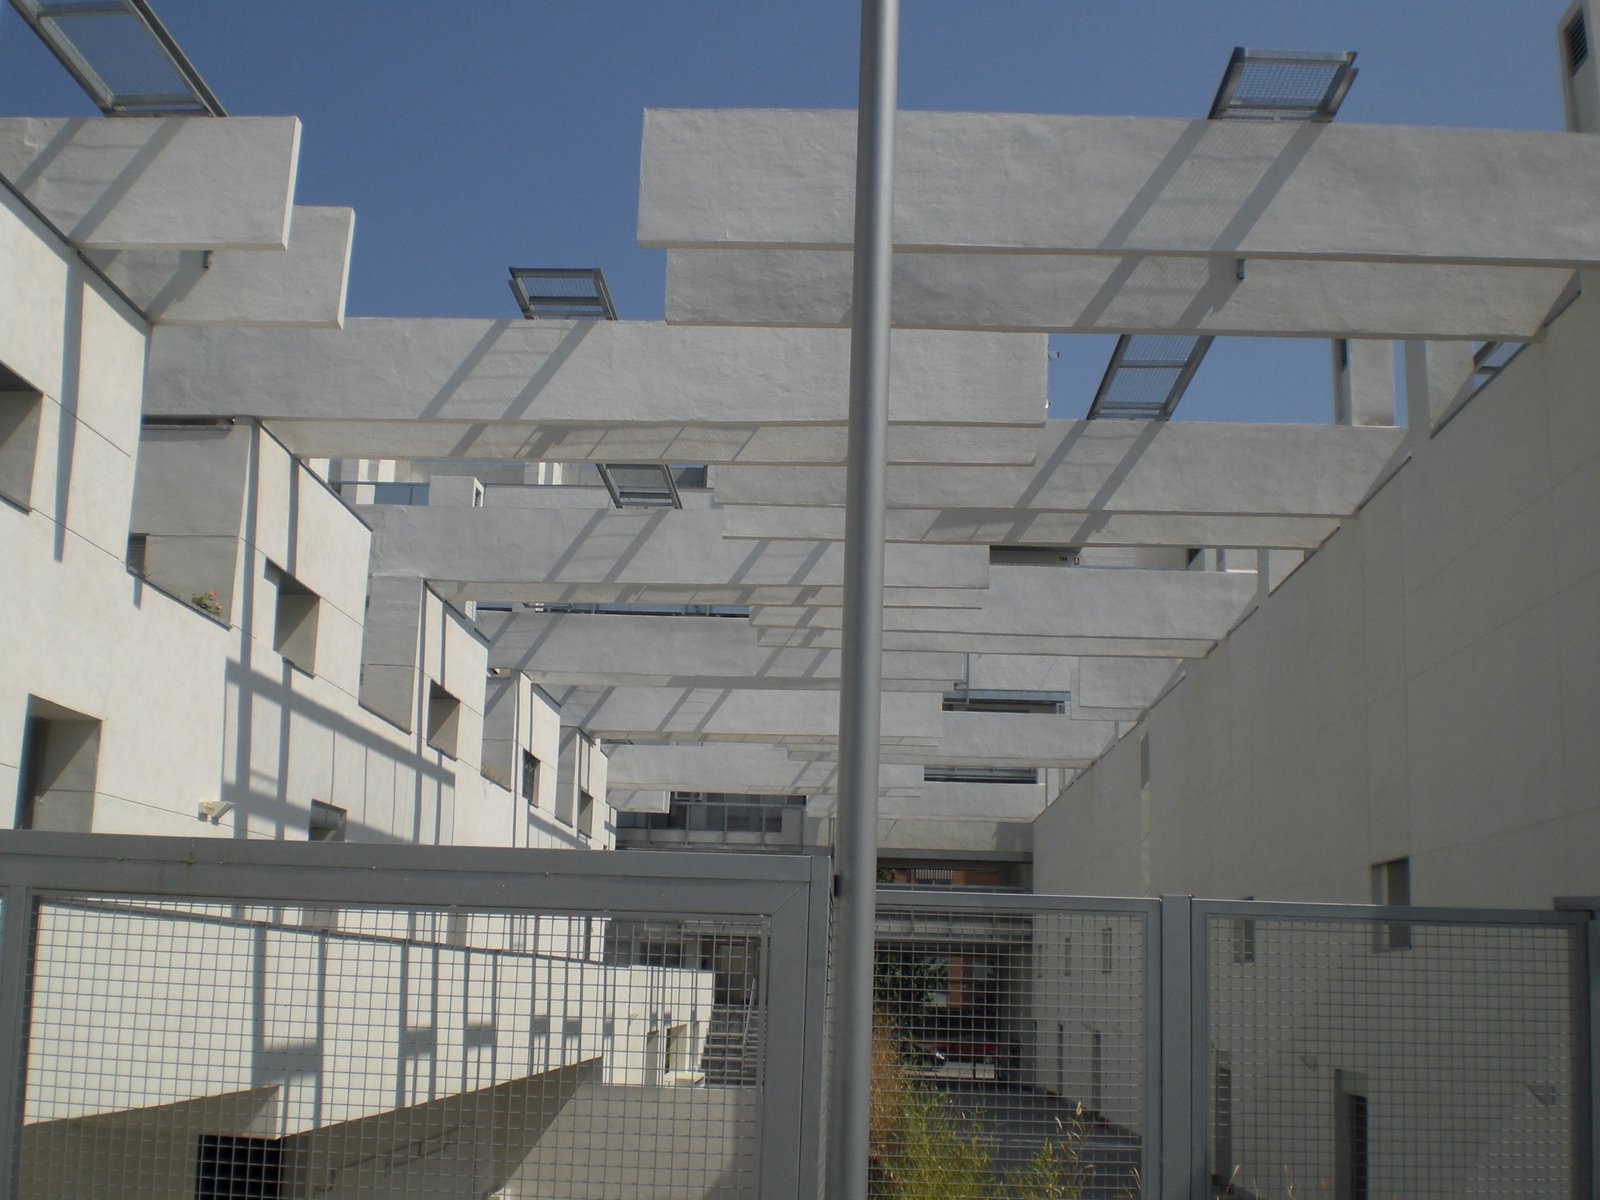 File:Edificio Carabanchel 11 (Madrid) 02